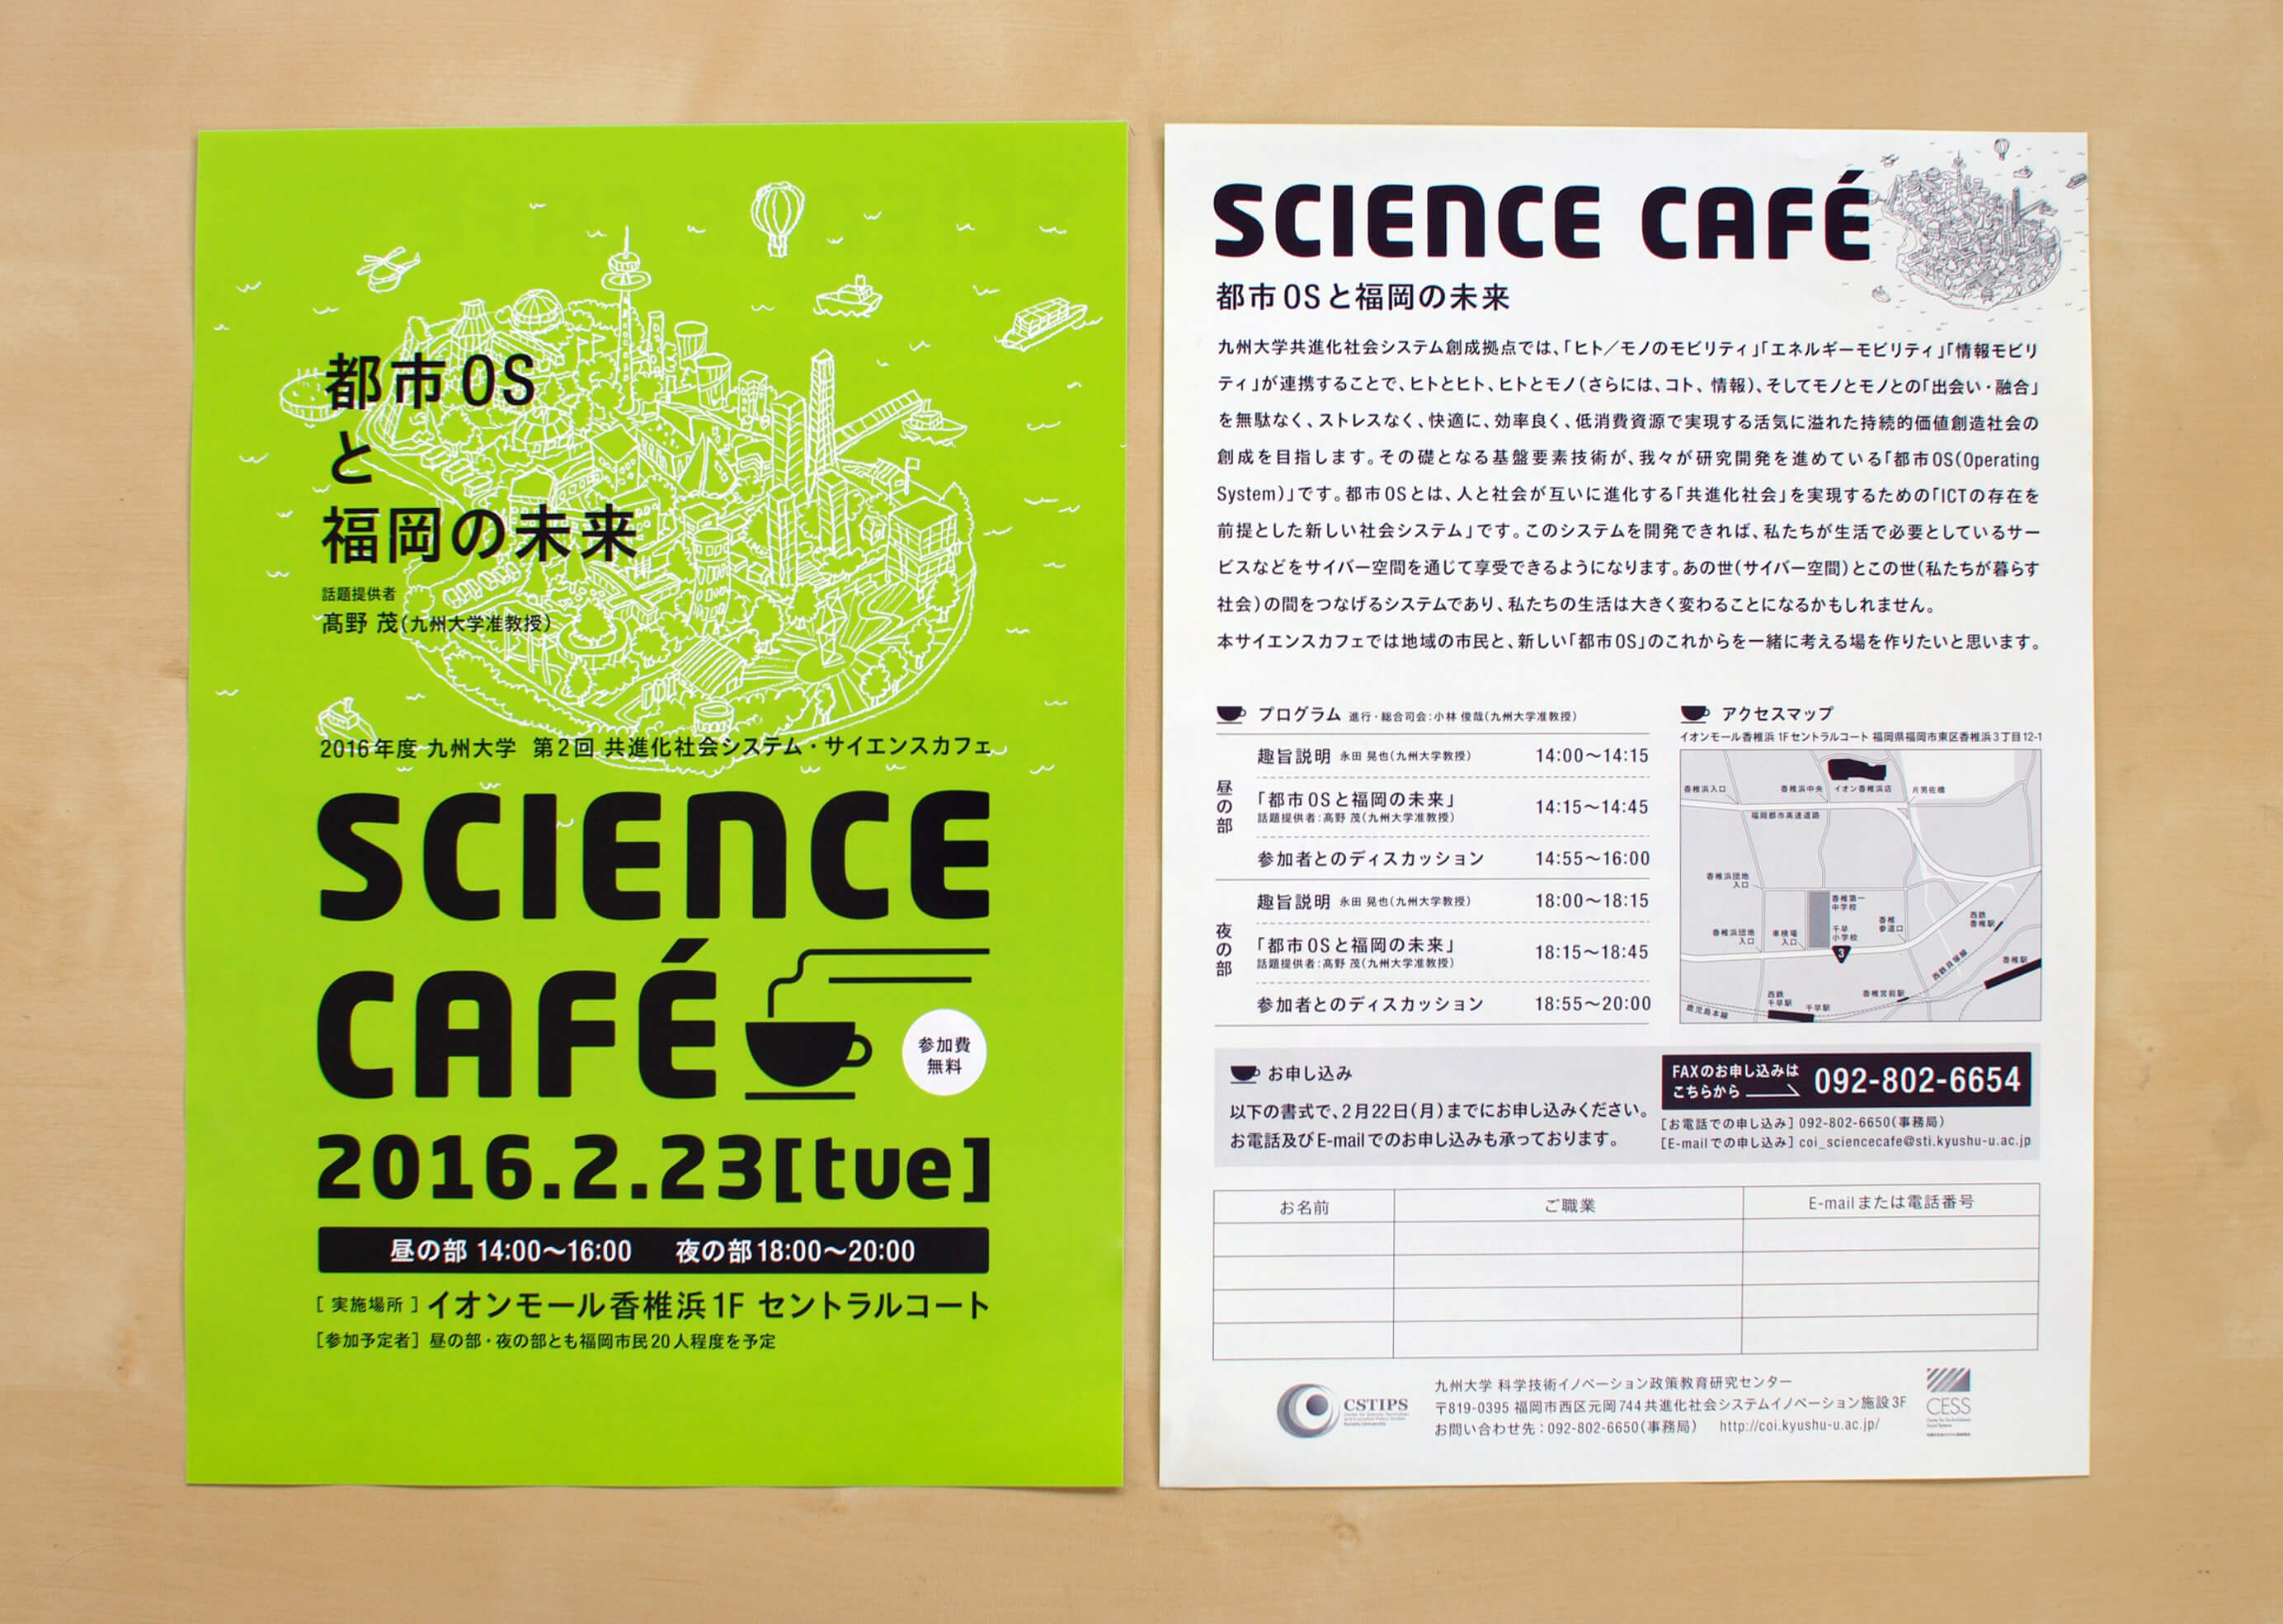 sciencecafe_flyer